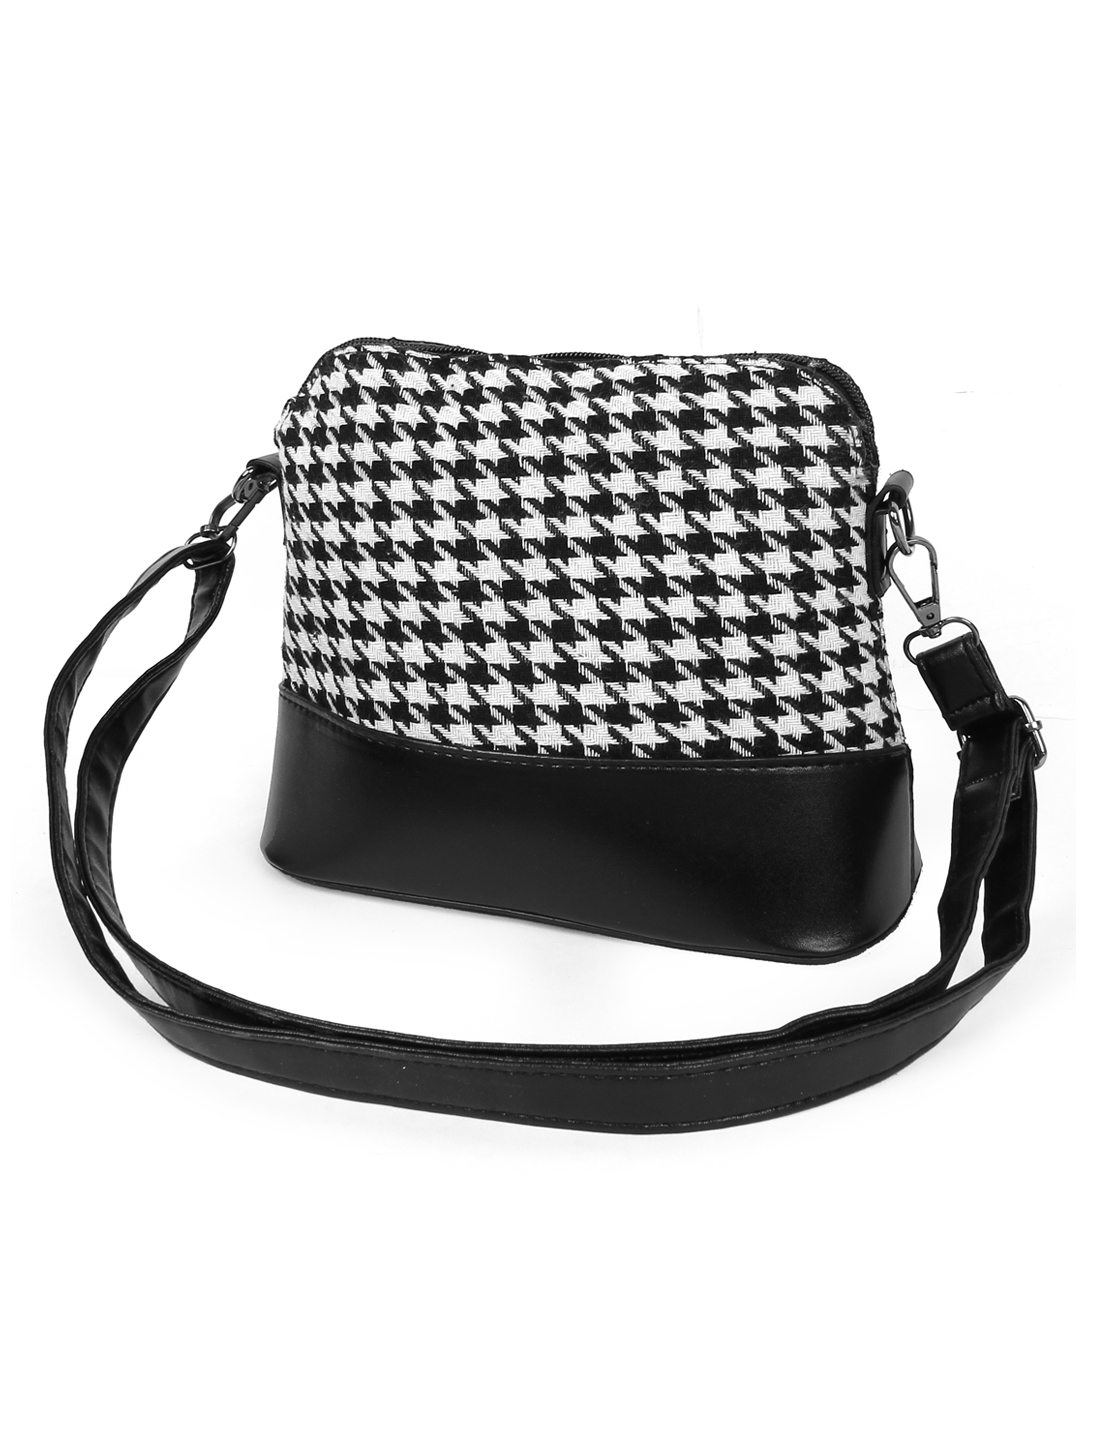 Cute New Houndstooth Cosmetic Messenger Satchel Crossbody Shoulder Bag